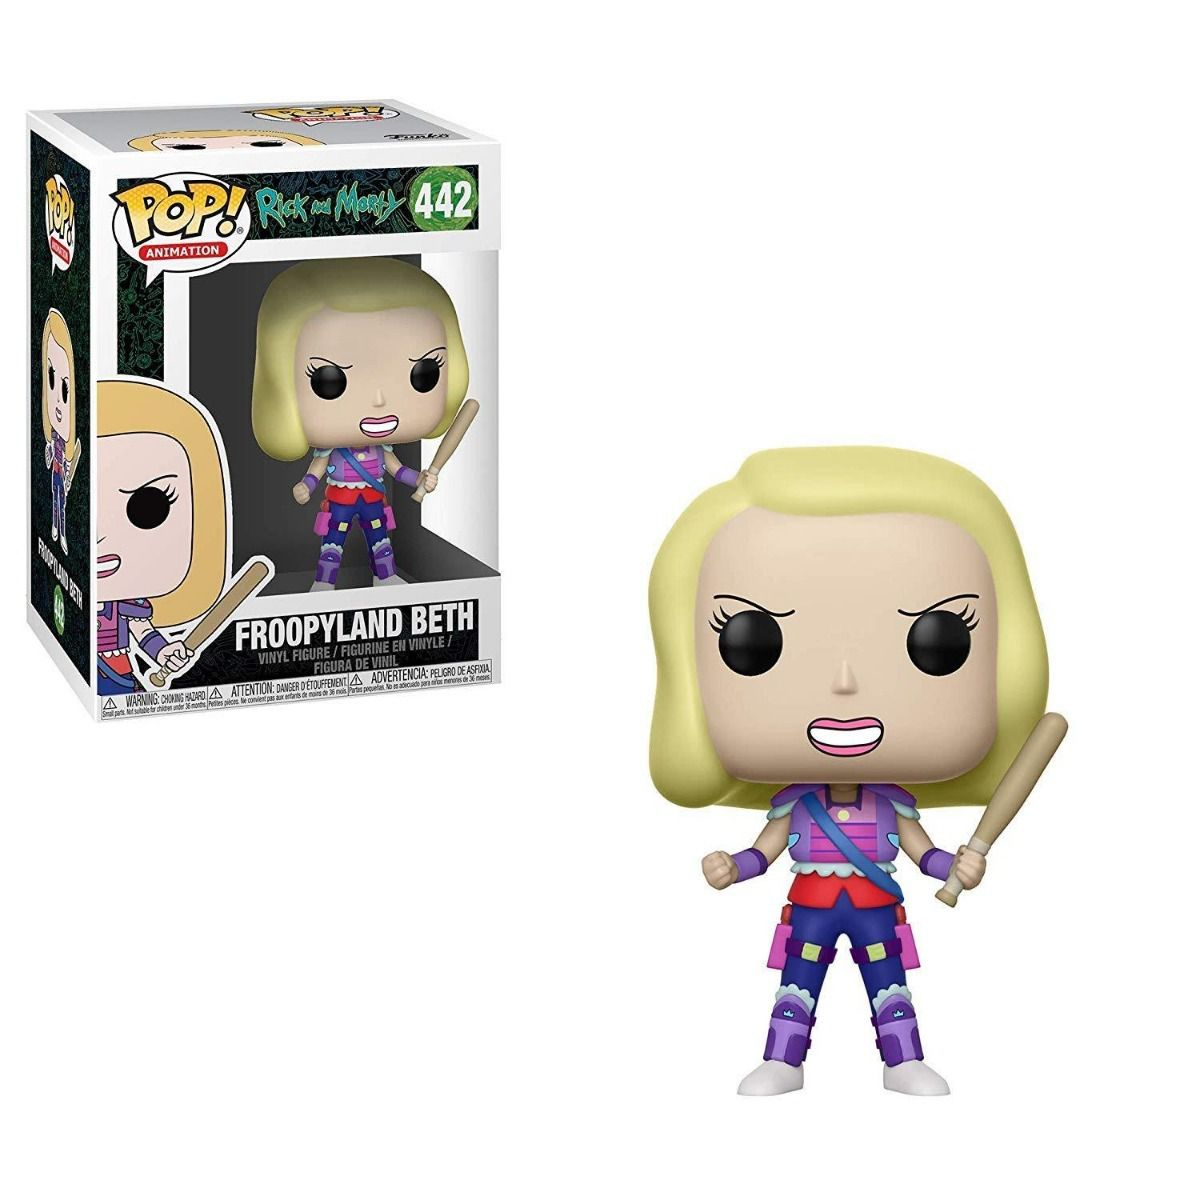 POP FUNKO 442 FROOPYLAND BETH RICK AND MORTY